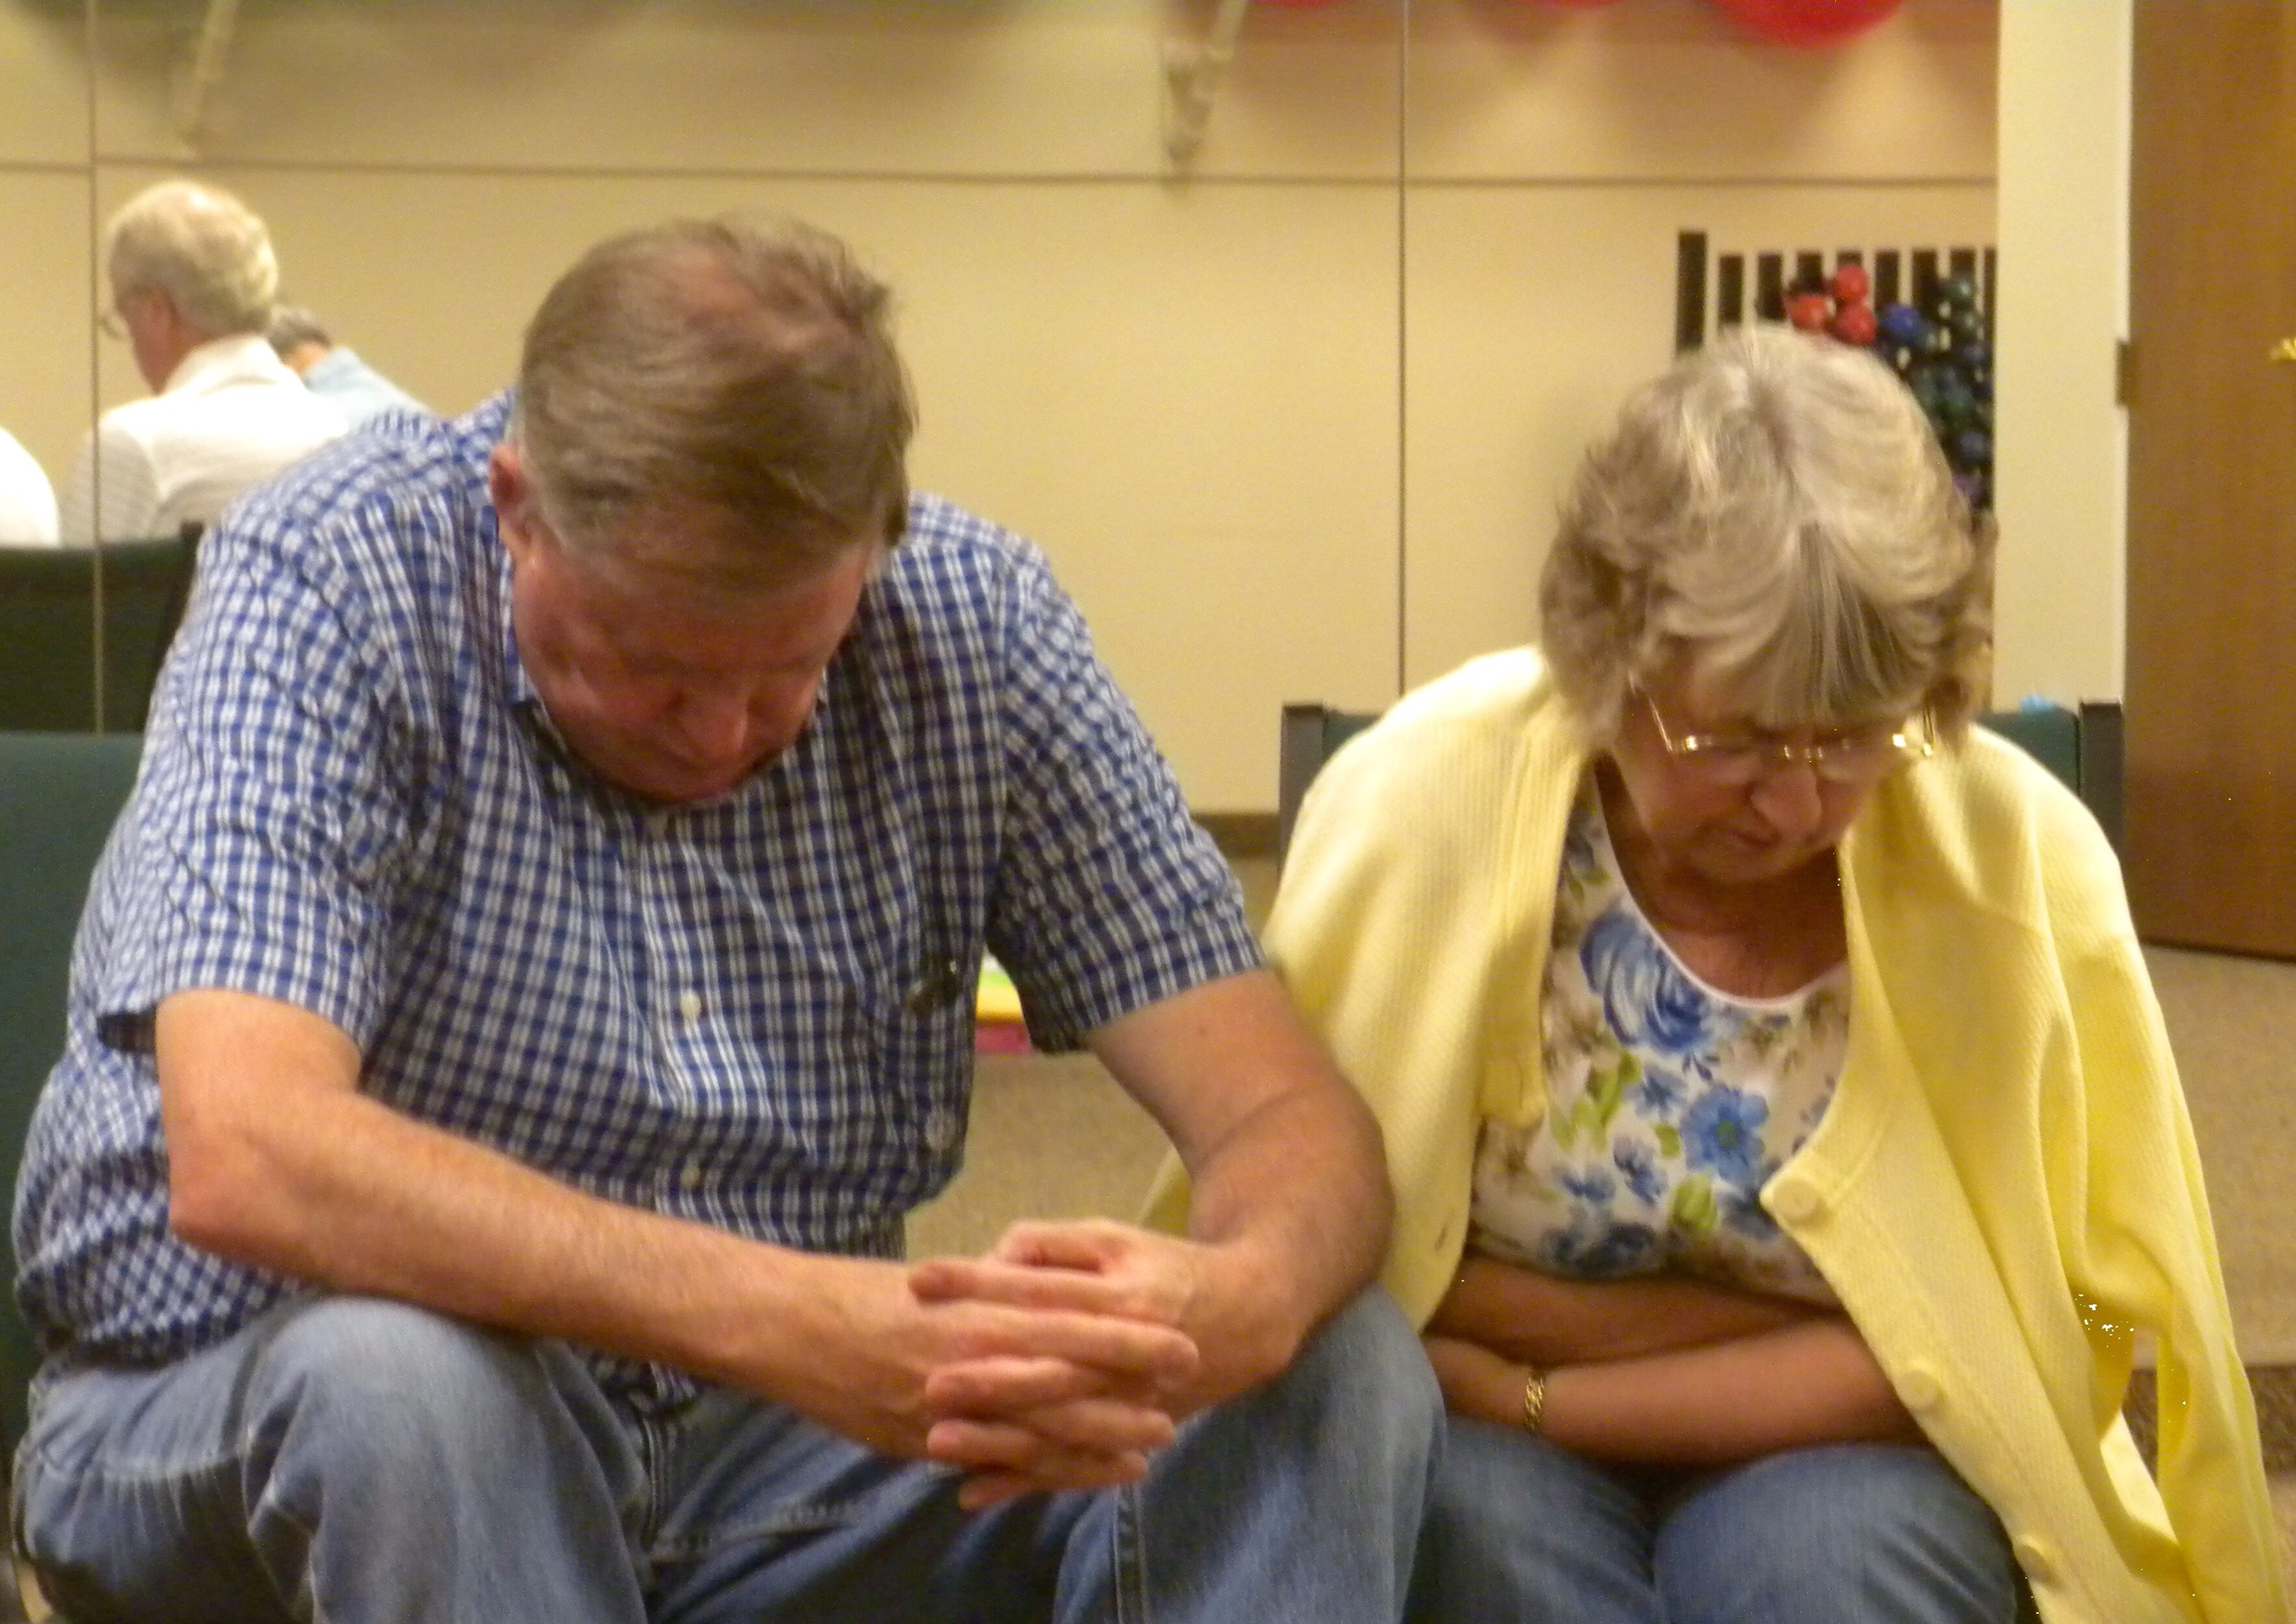 We spend time together in prayer during each of our trip meetings.